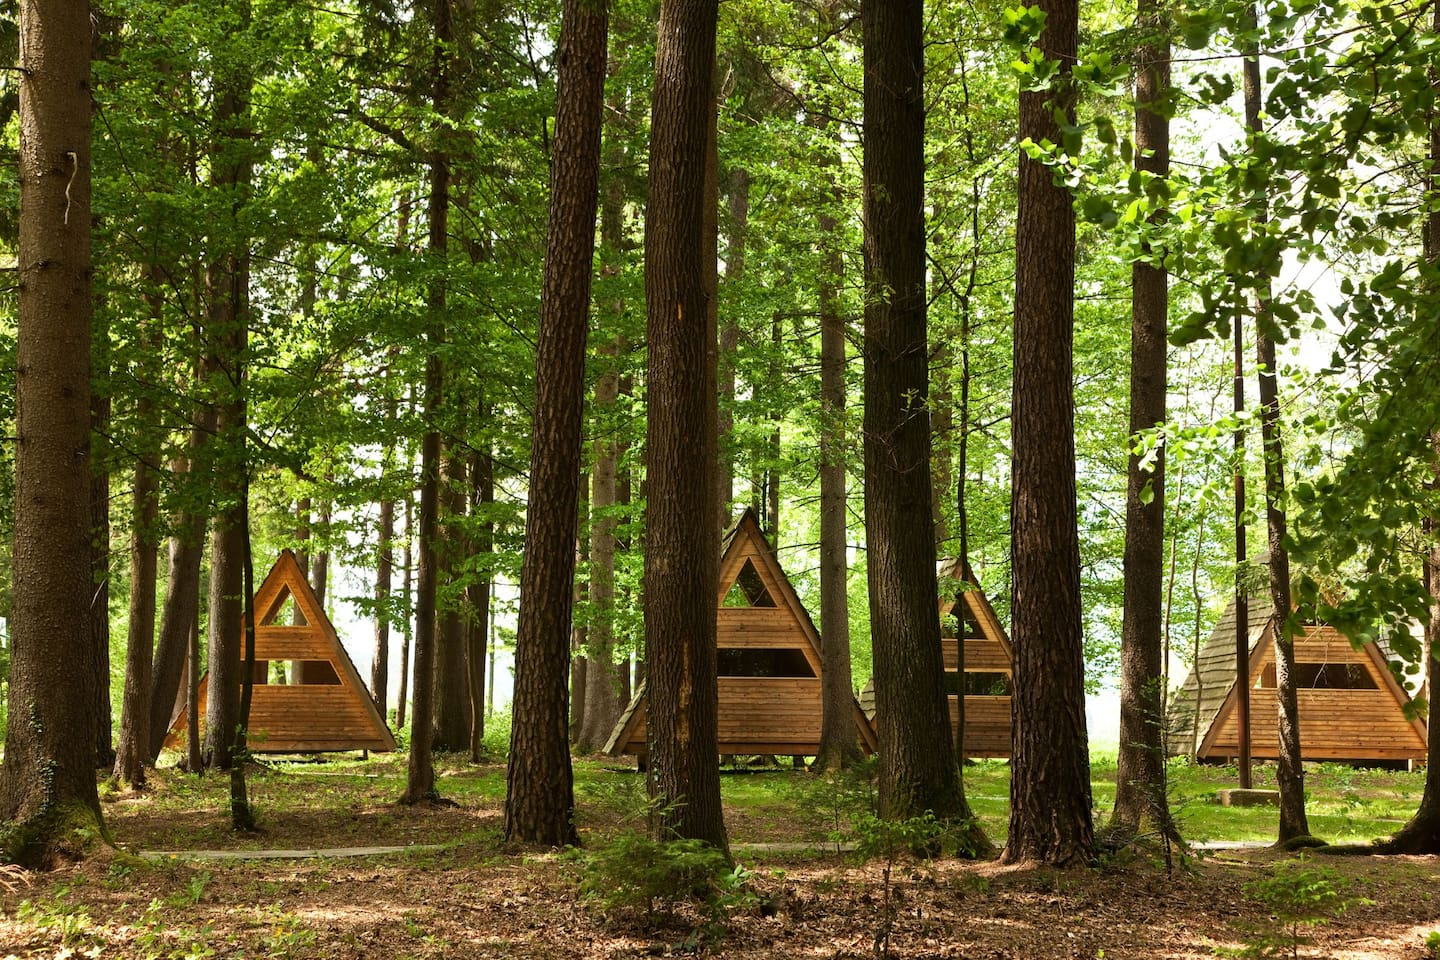 Our 'Forest bed' Huts